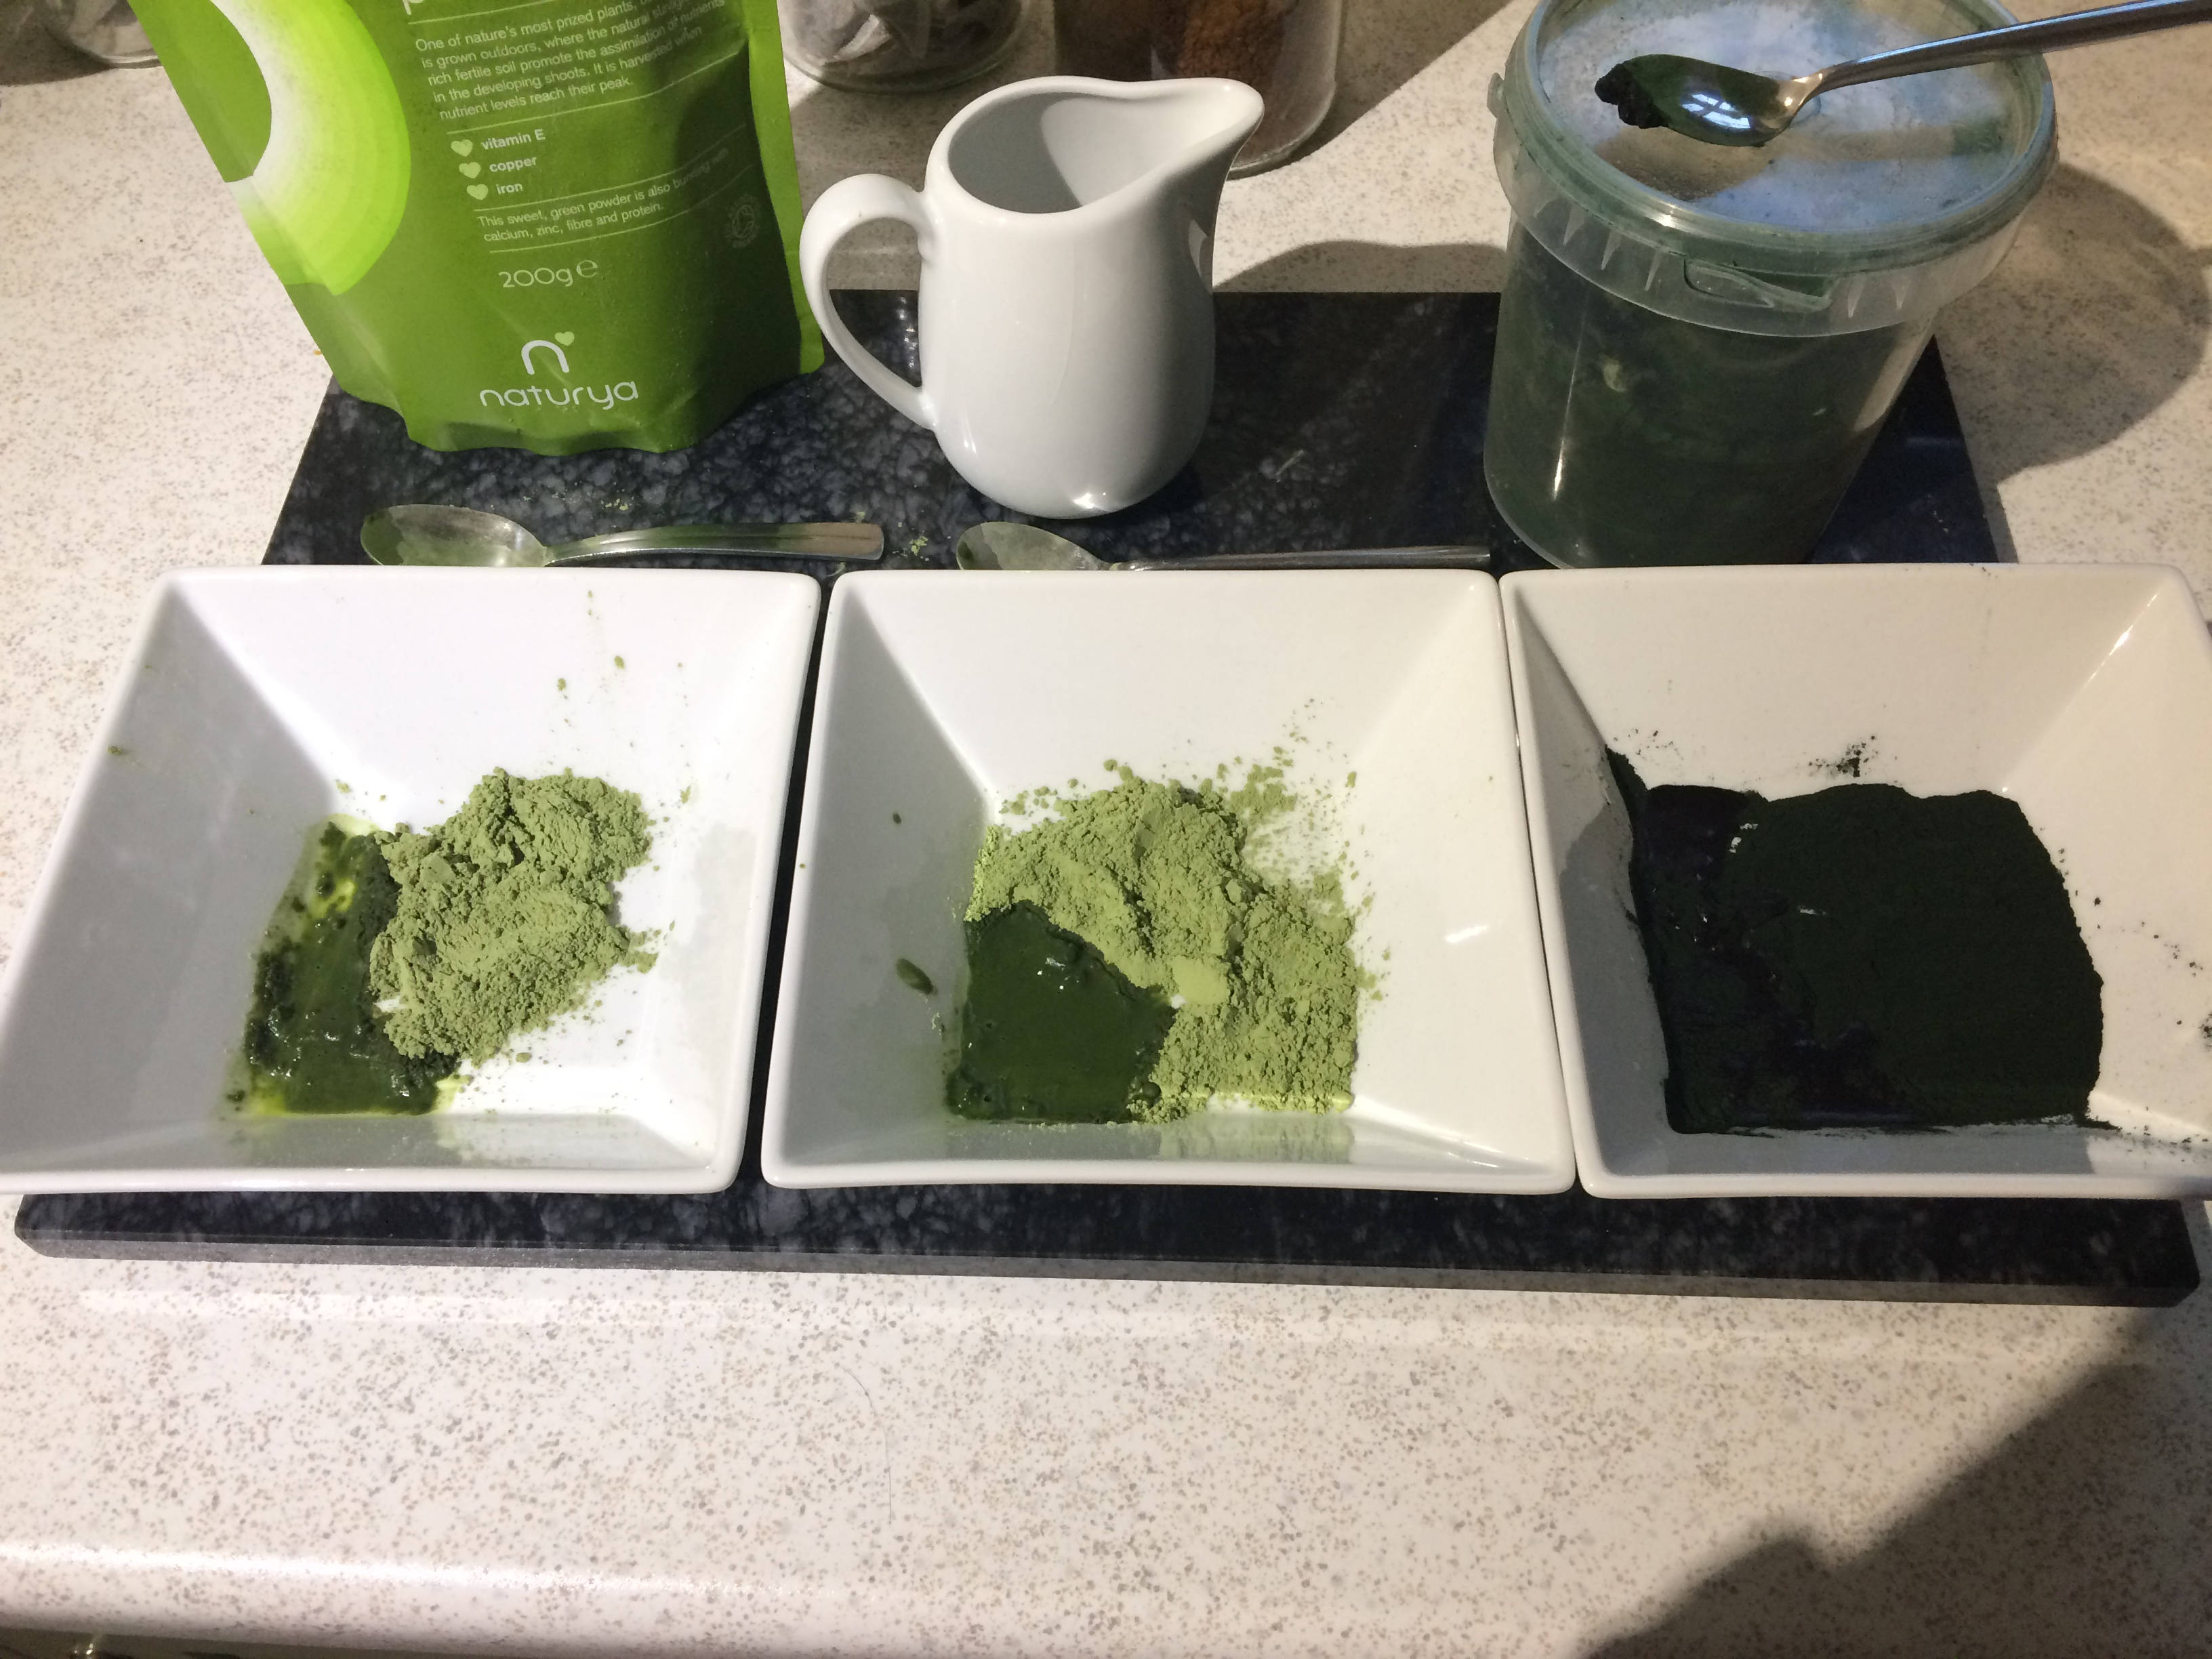 Choice of green powders